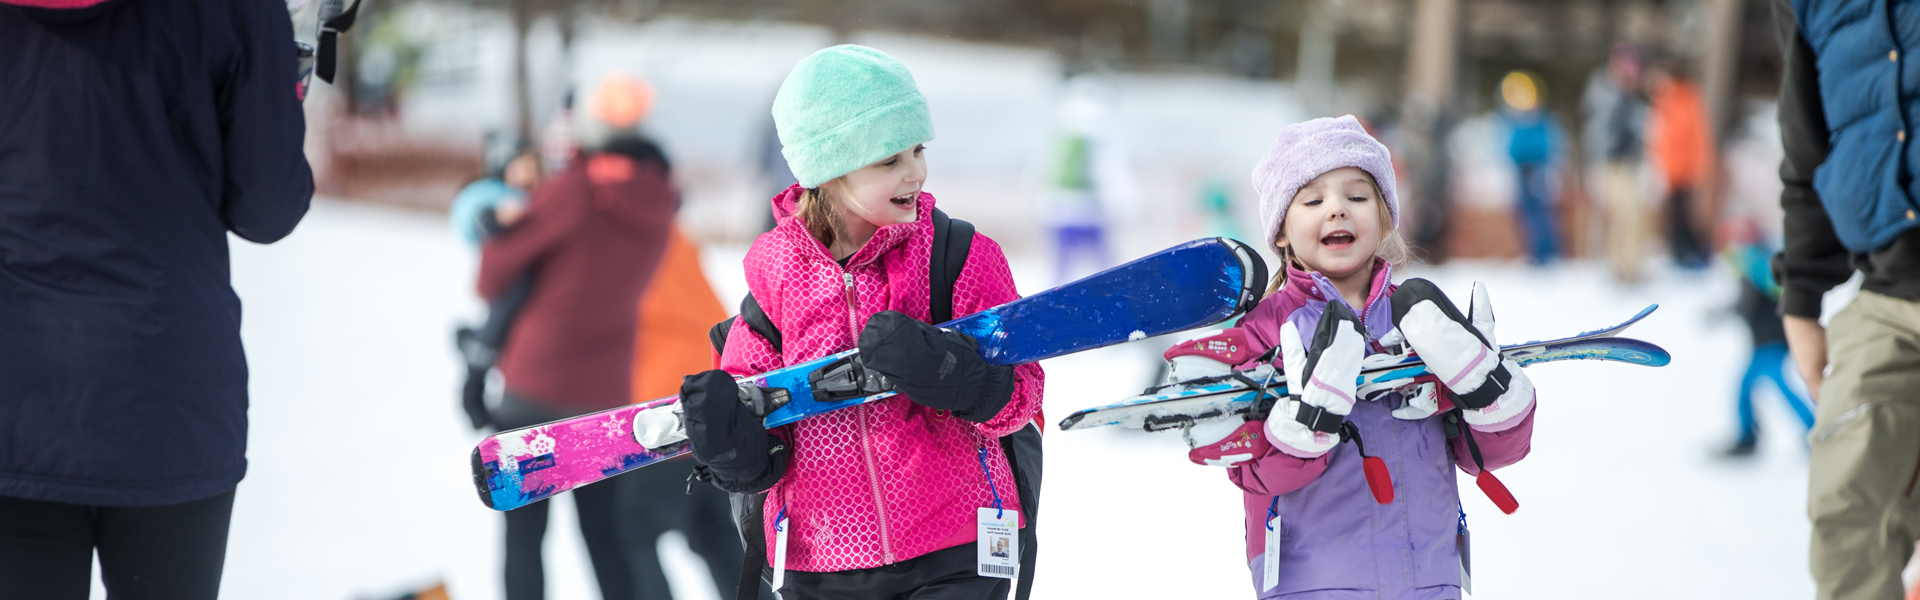 Image of two girls carrying their ski equipment